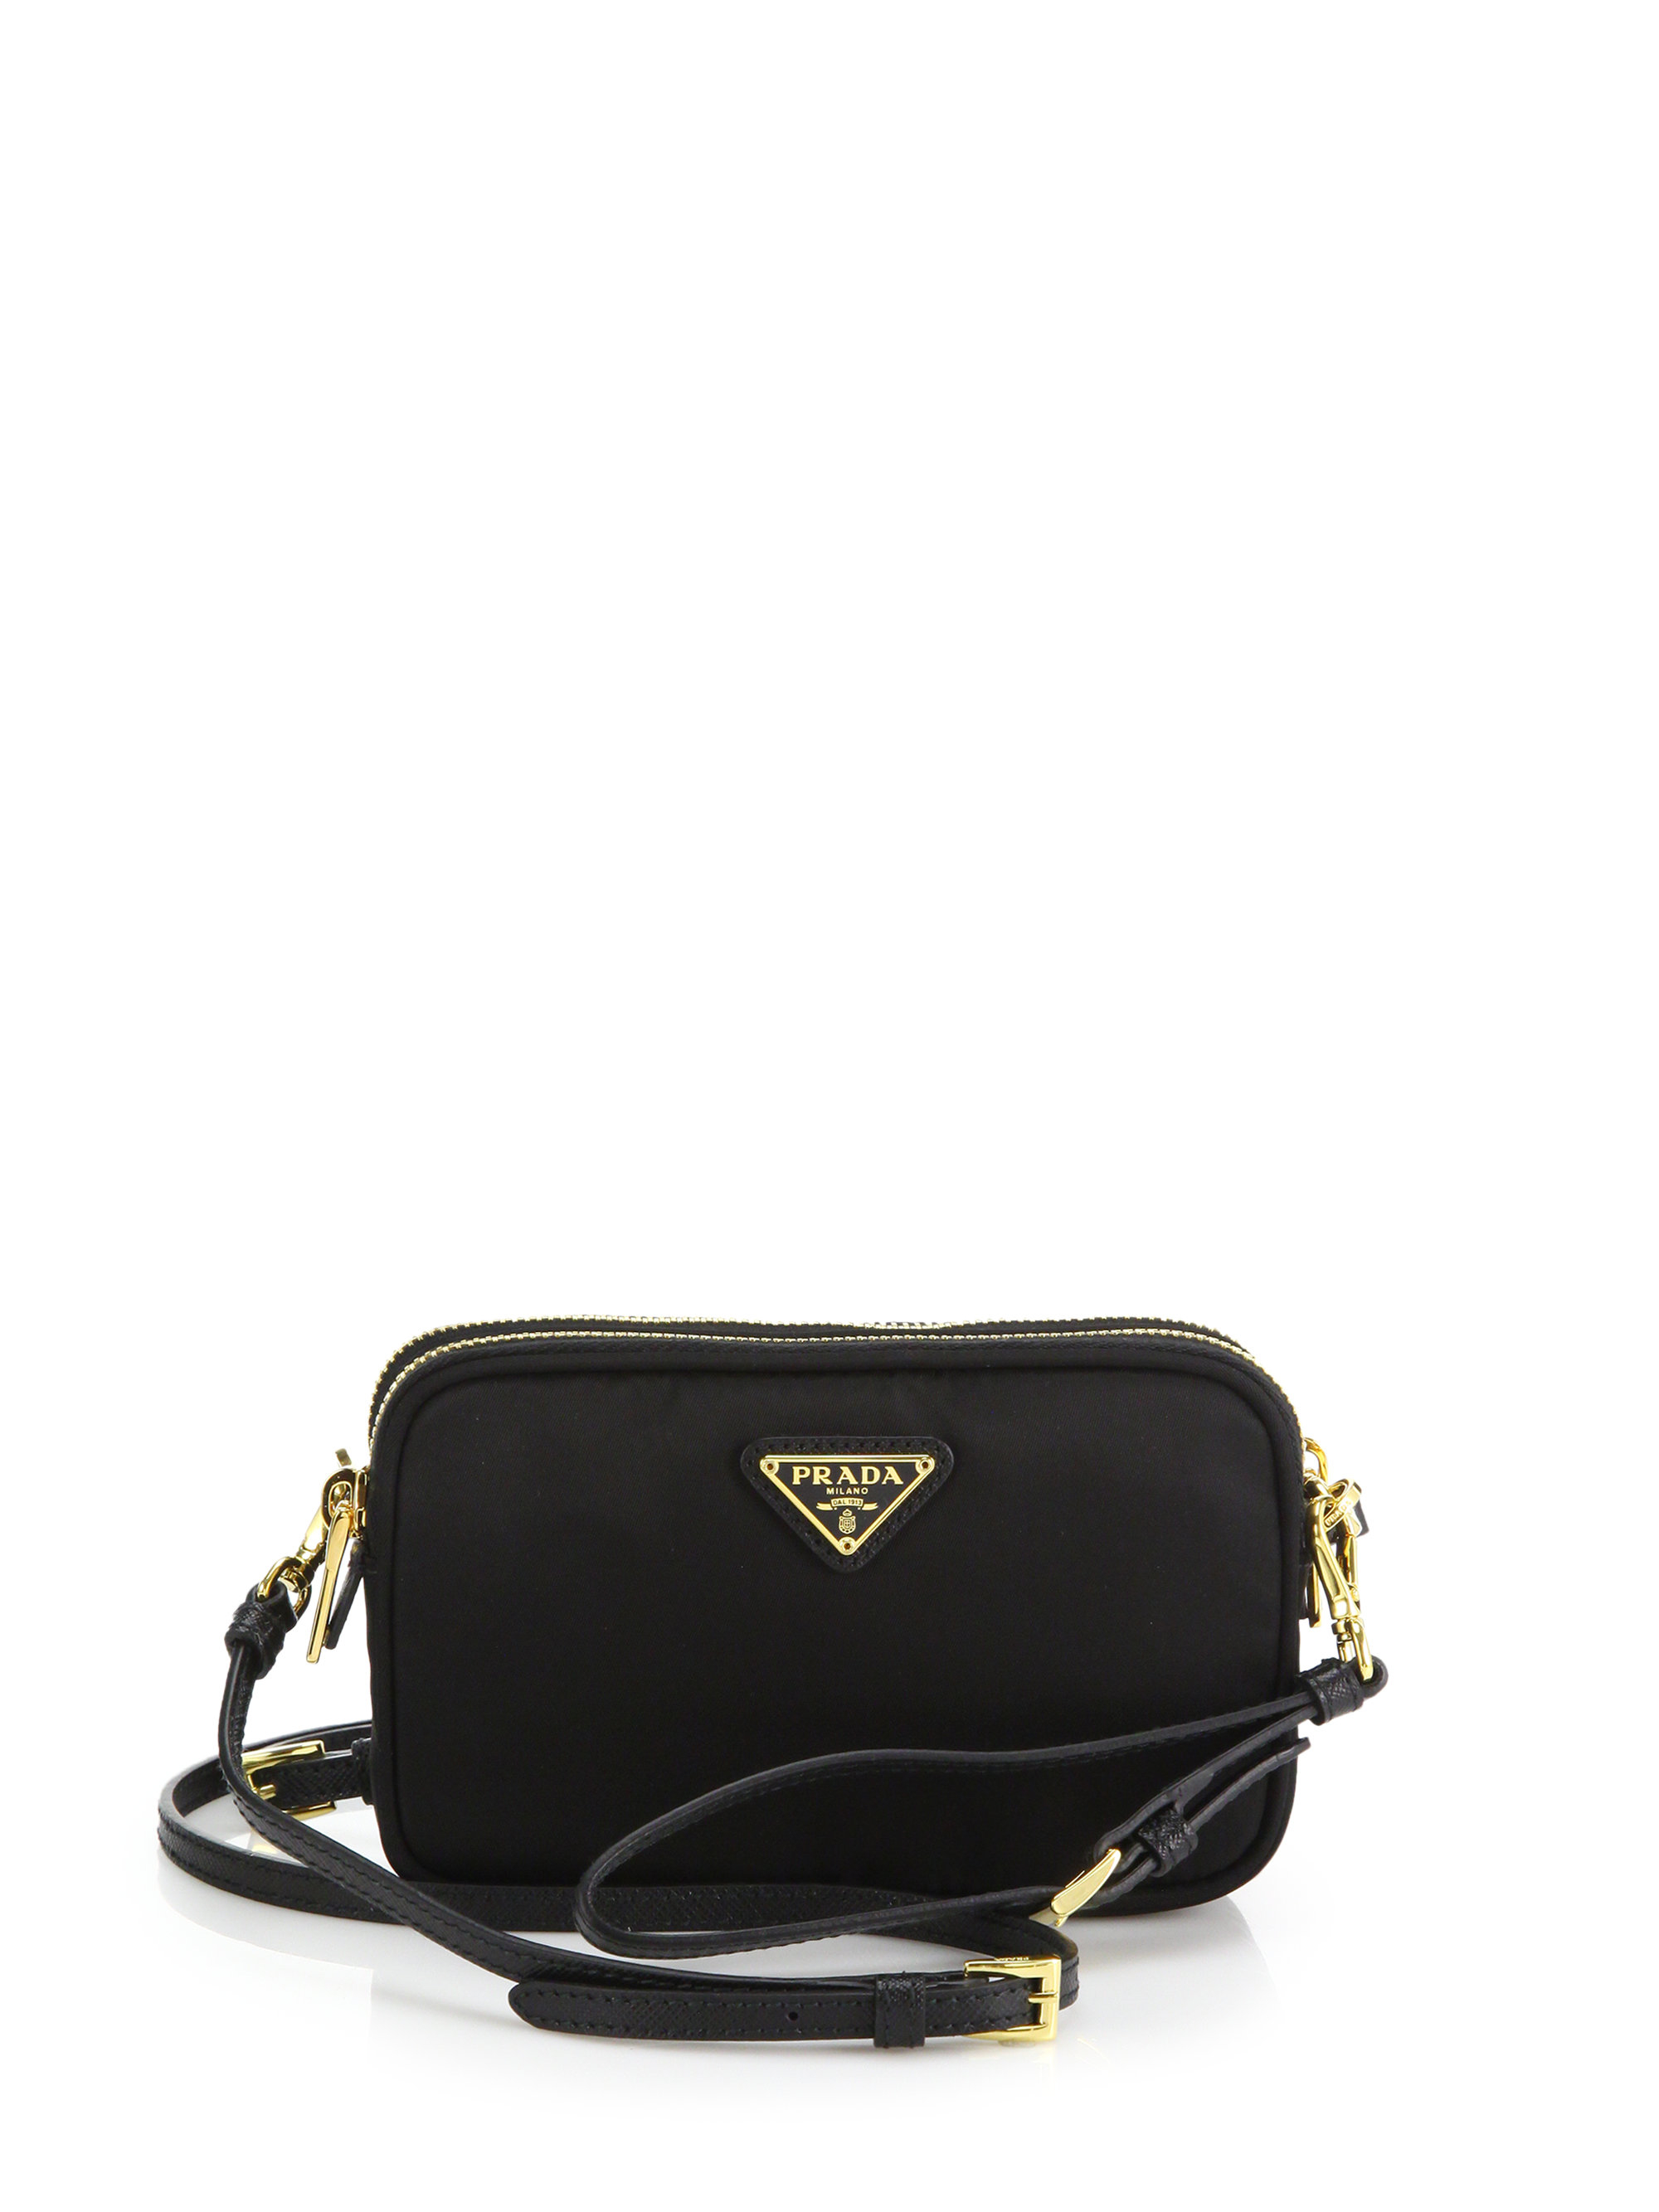 82068e4ba65a ... order lyst prada nylon camera bag in black 9a01e 31f0b